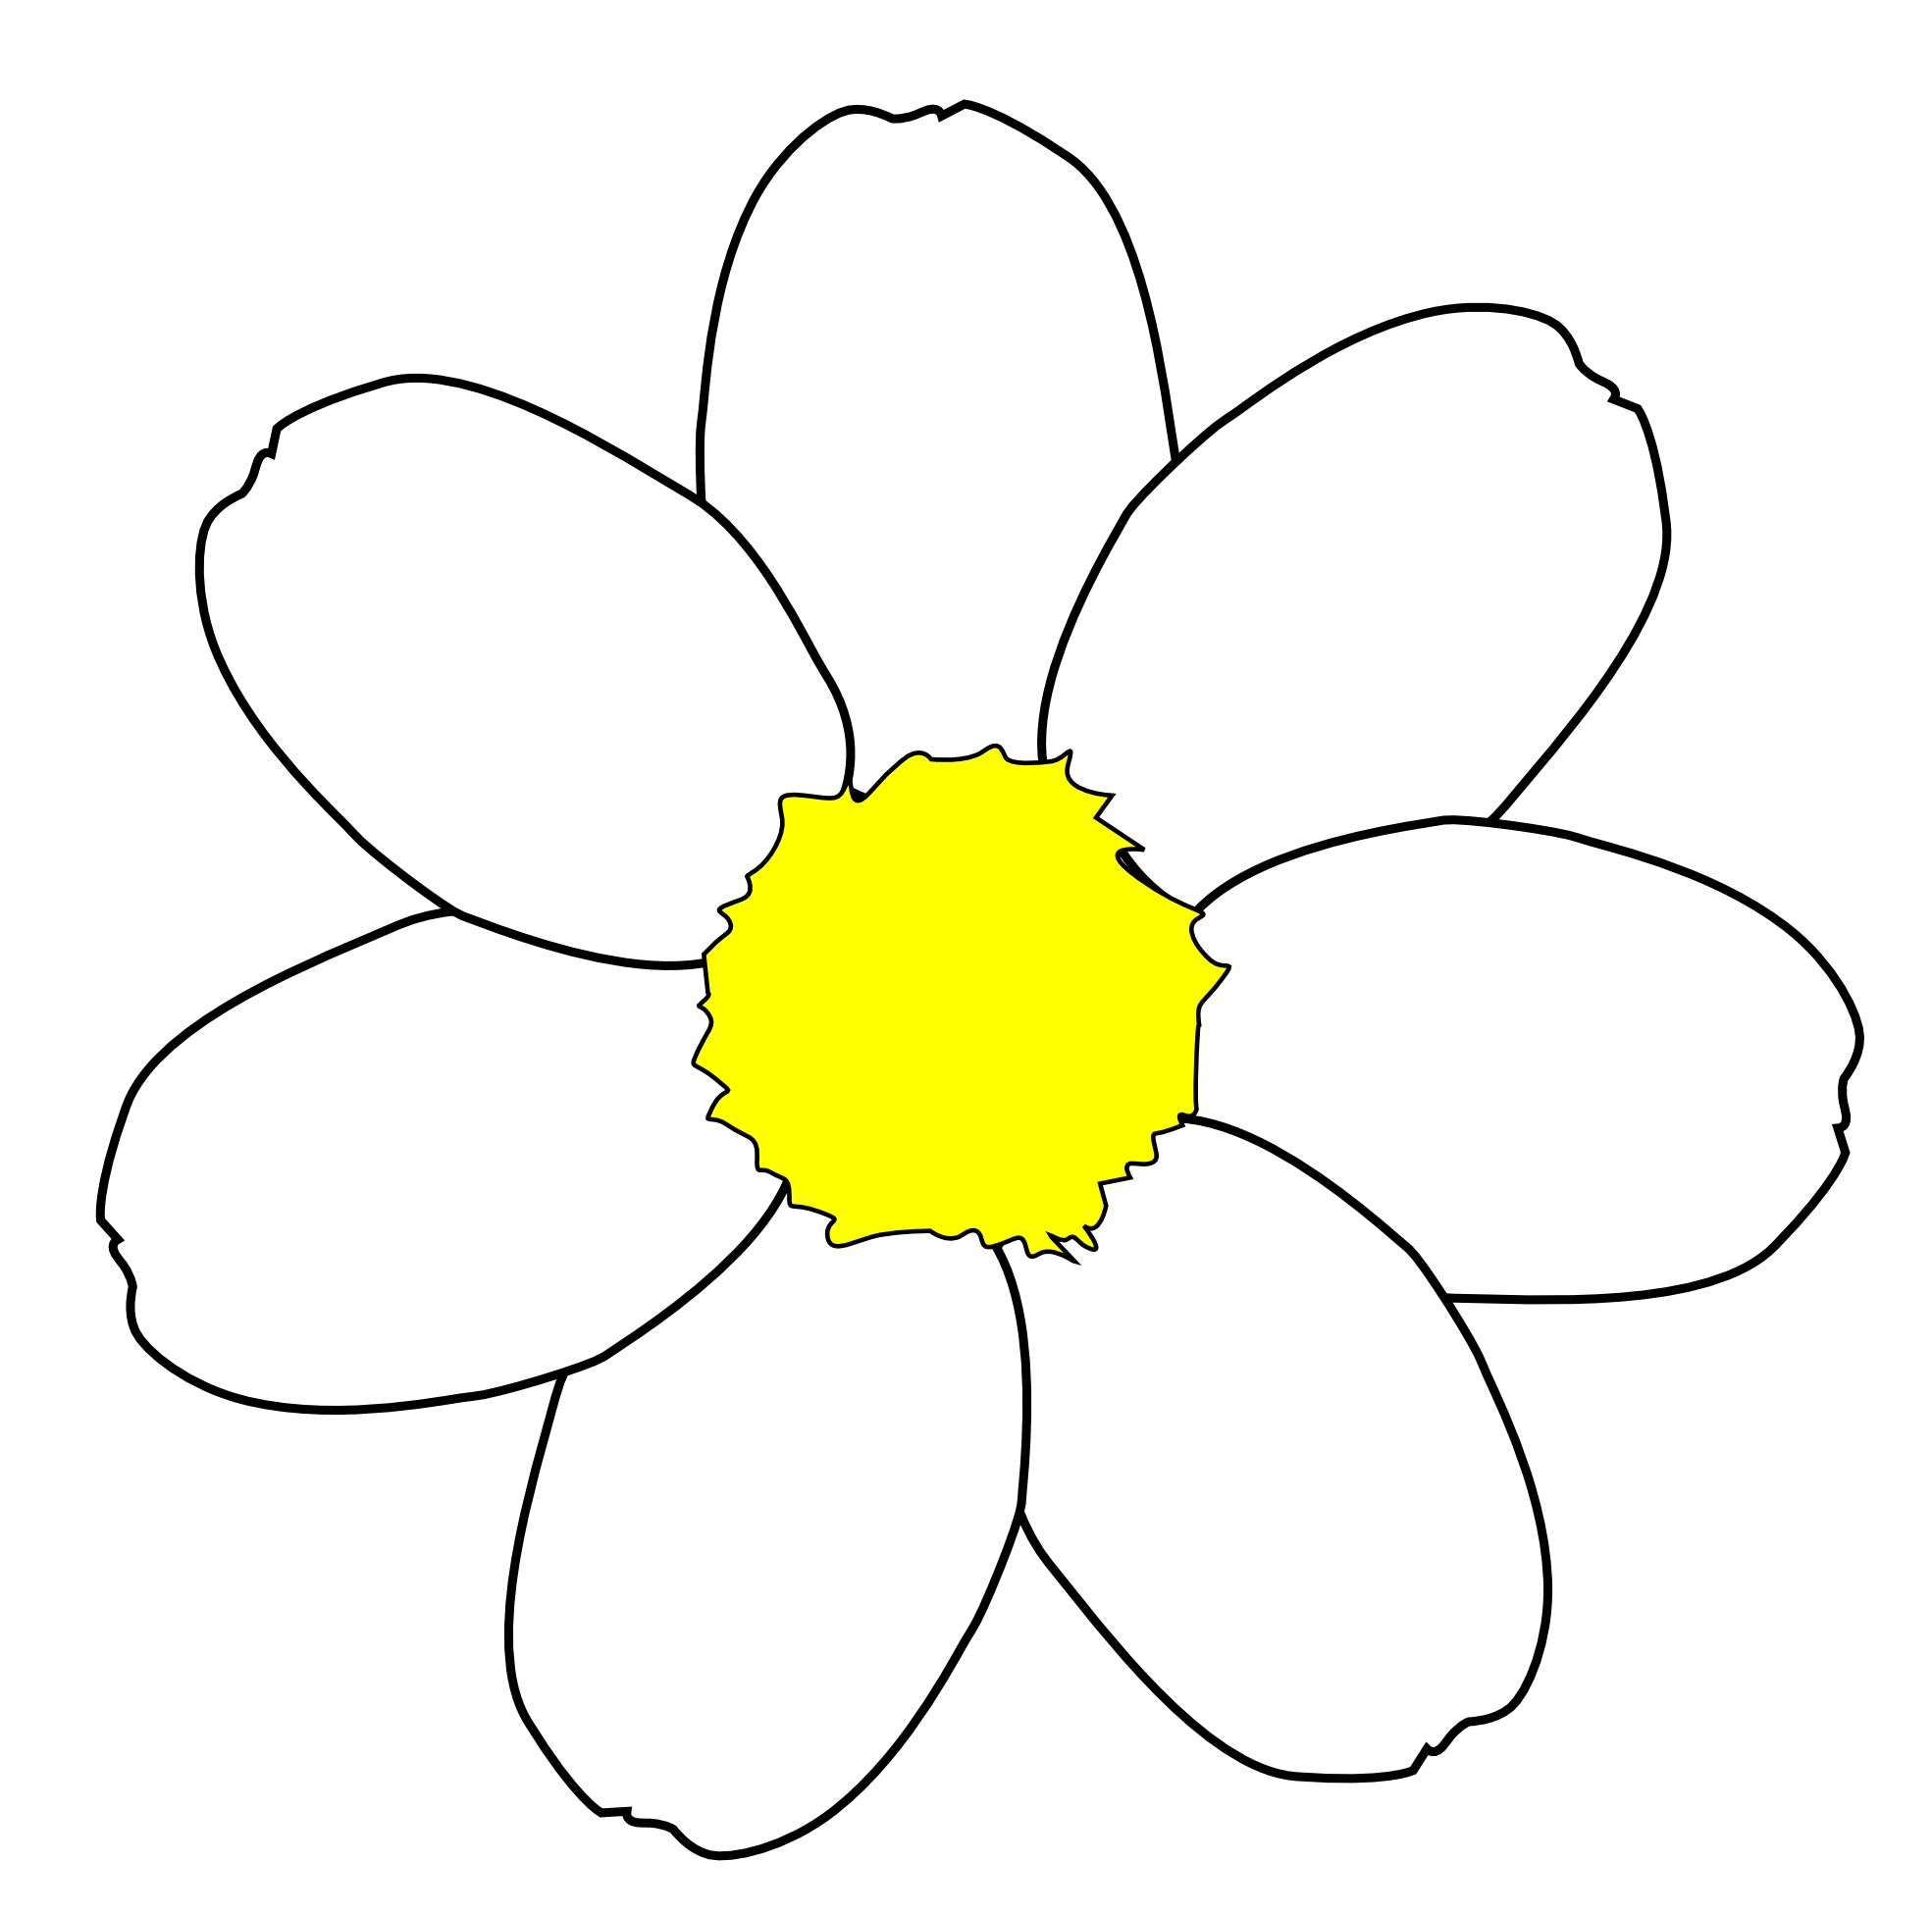 Daisy Flower Outline - Cliparts.co